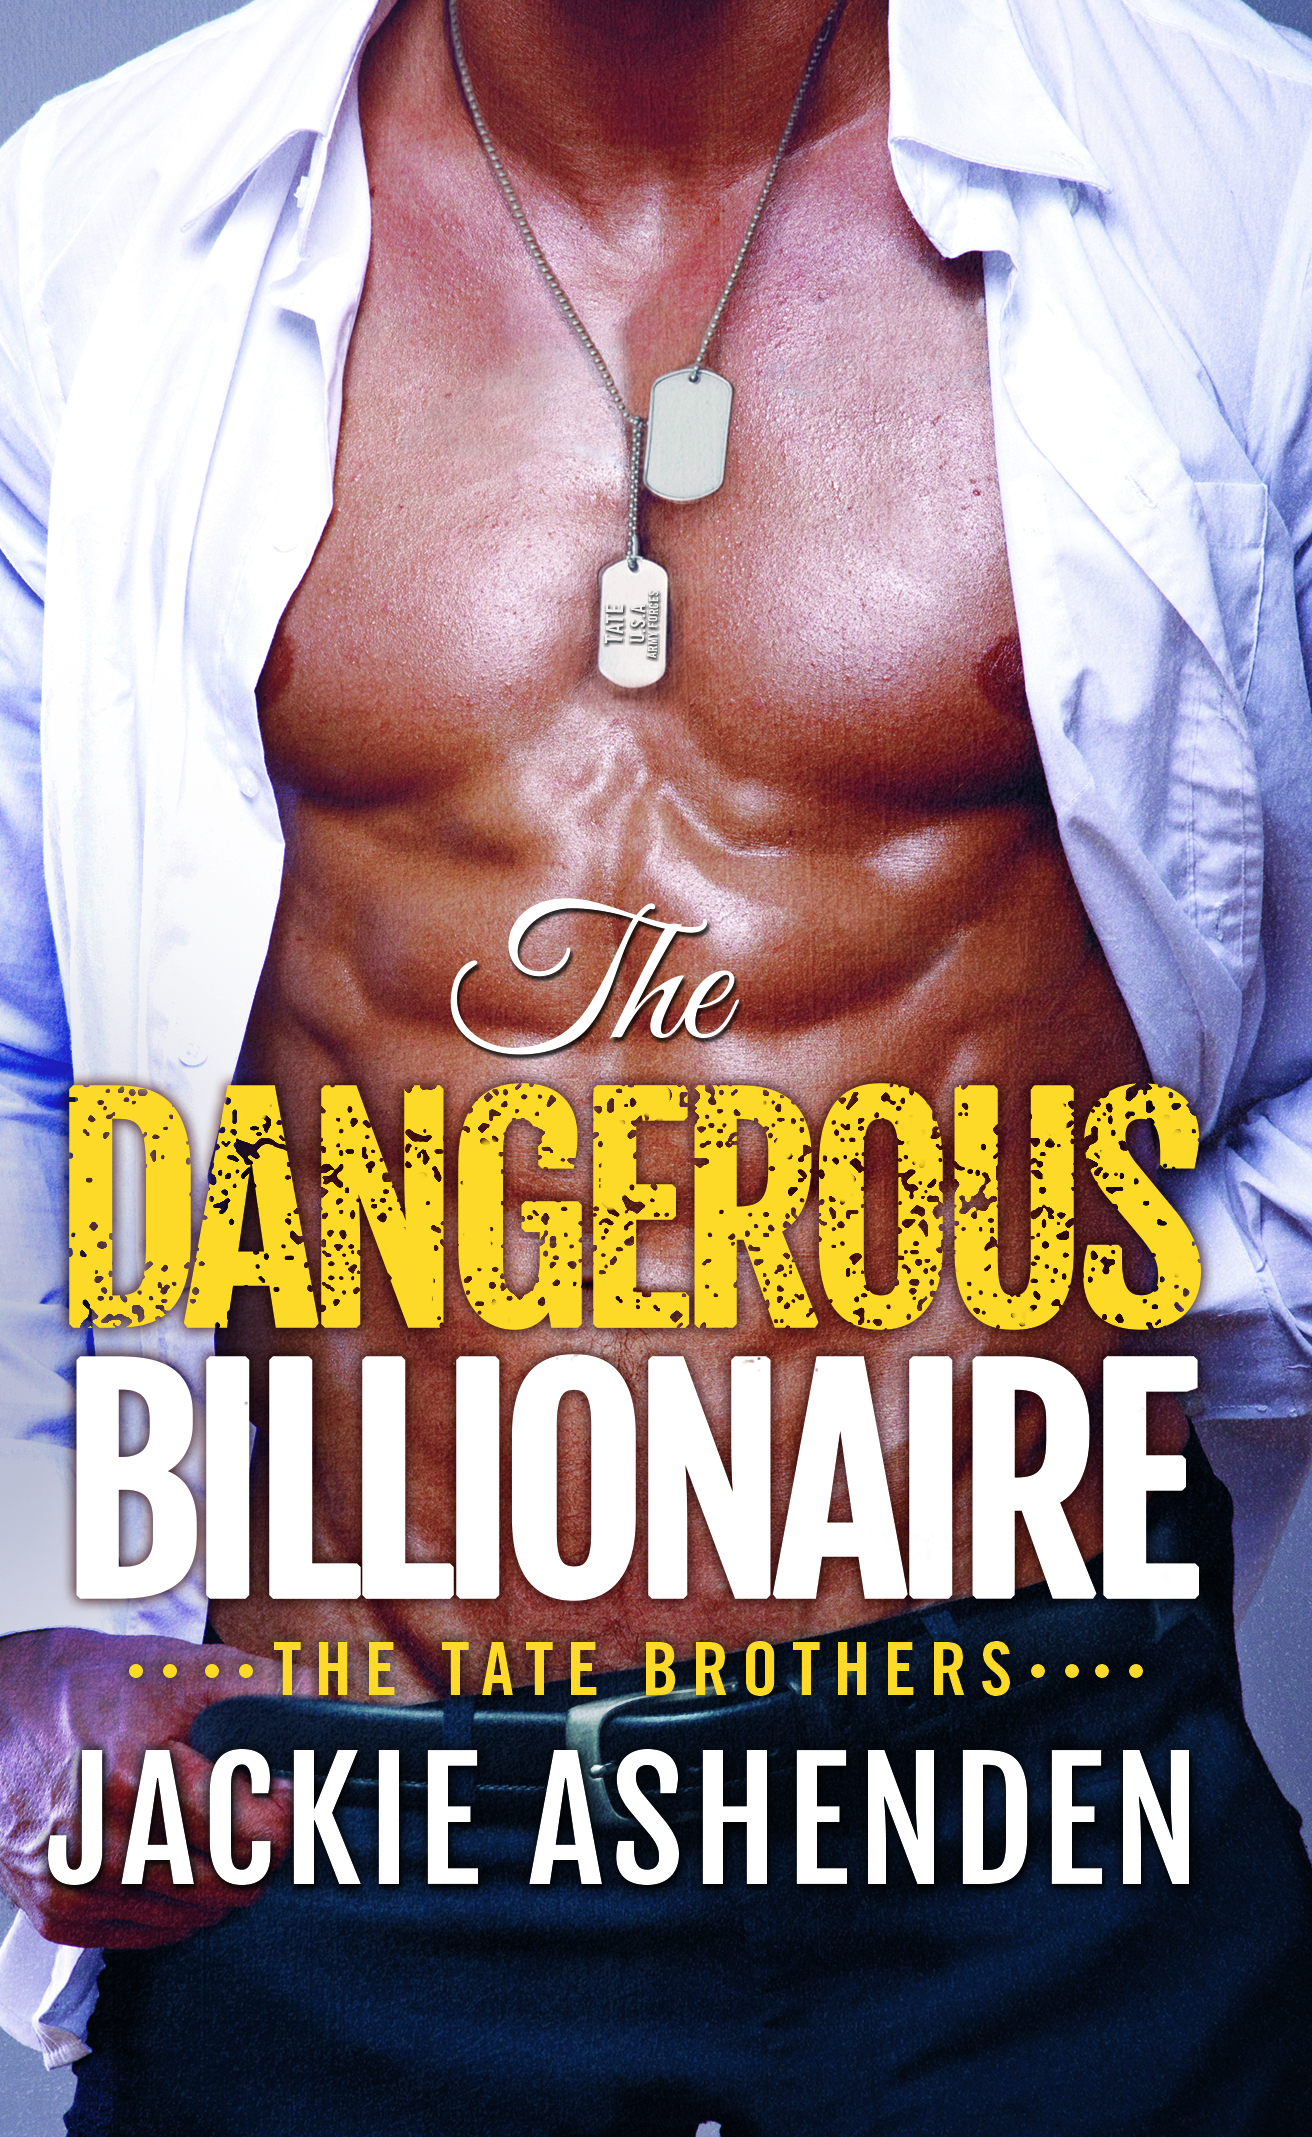 The Dangerous Billionaire by Jackie Ashenden